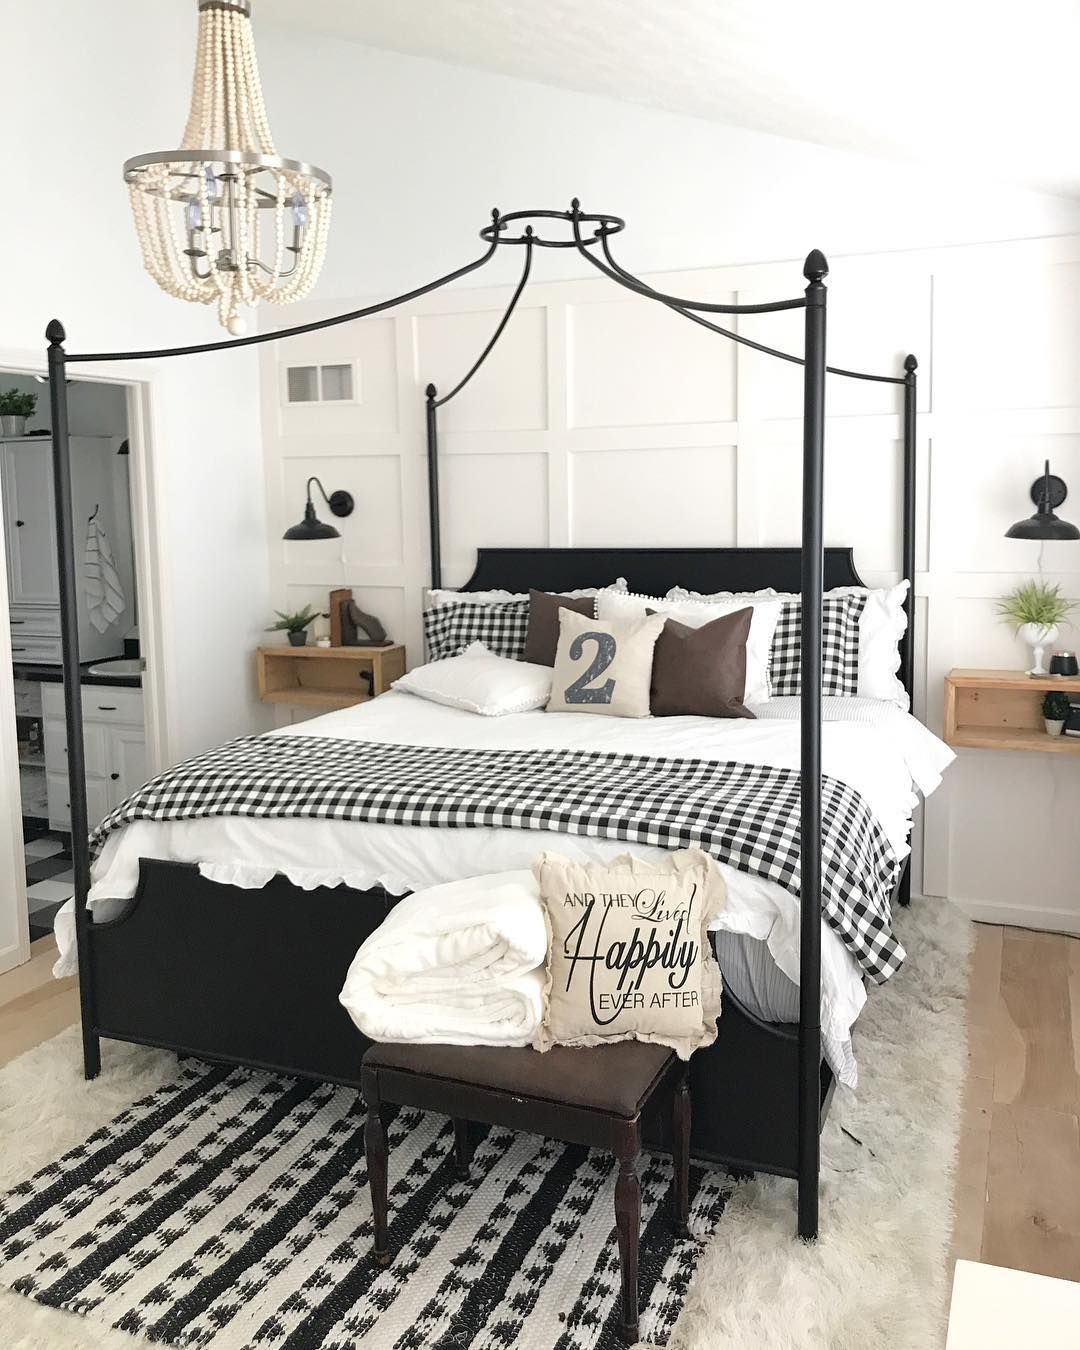 Wiring A Master Bedroom Wire Center Media Room Diagram 360 Likes 4 Comments Becky Theothersideofneutral On Instagram Rh Pinterest Com Outlets Afci Circuit